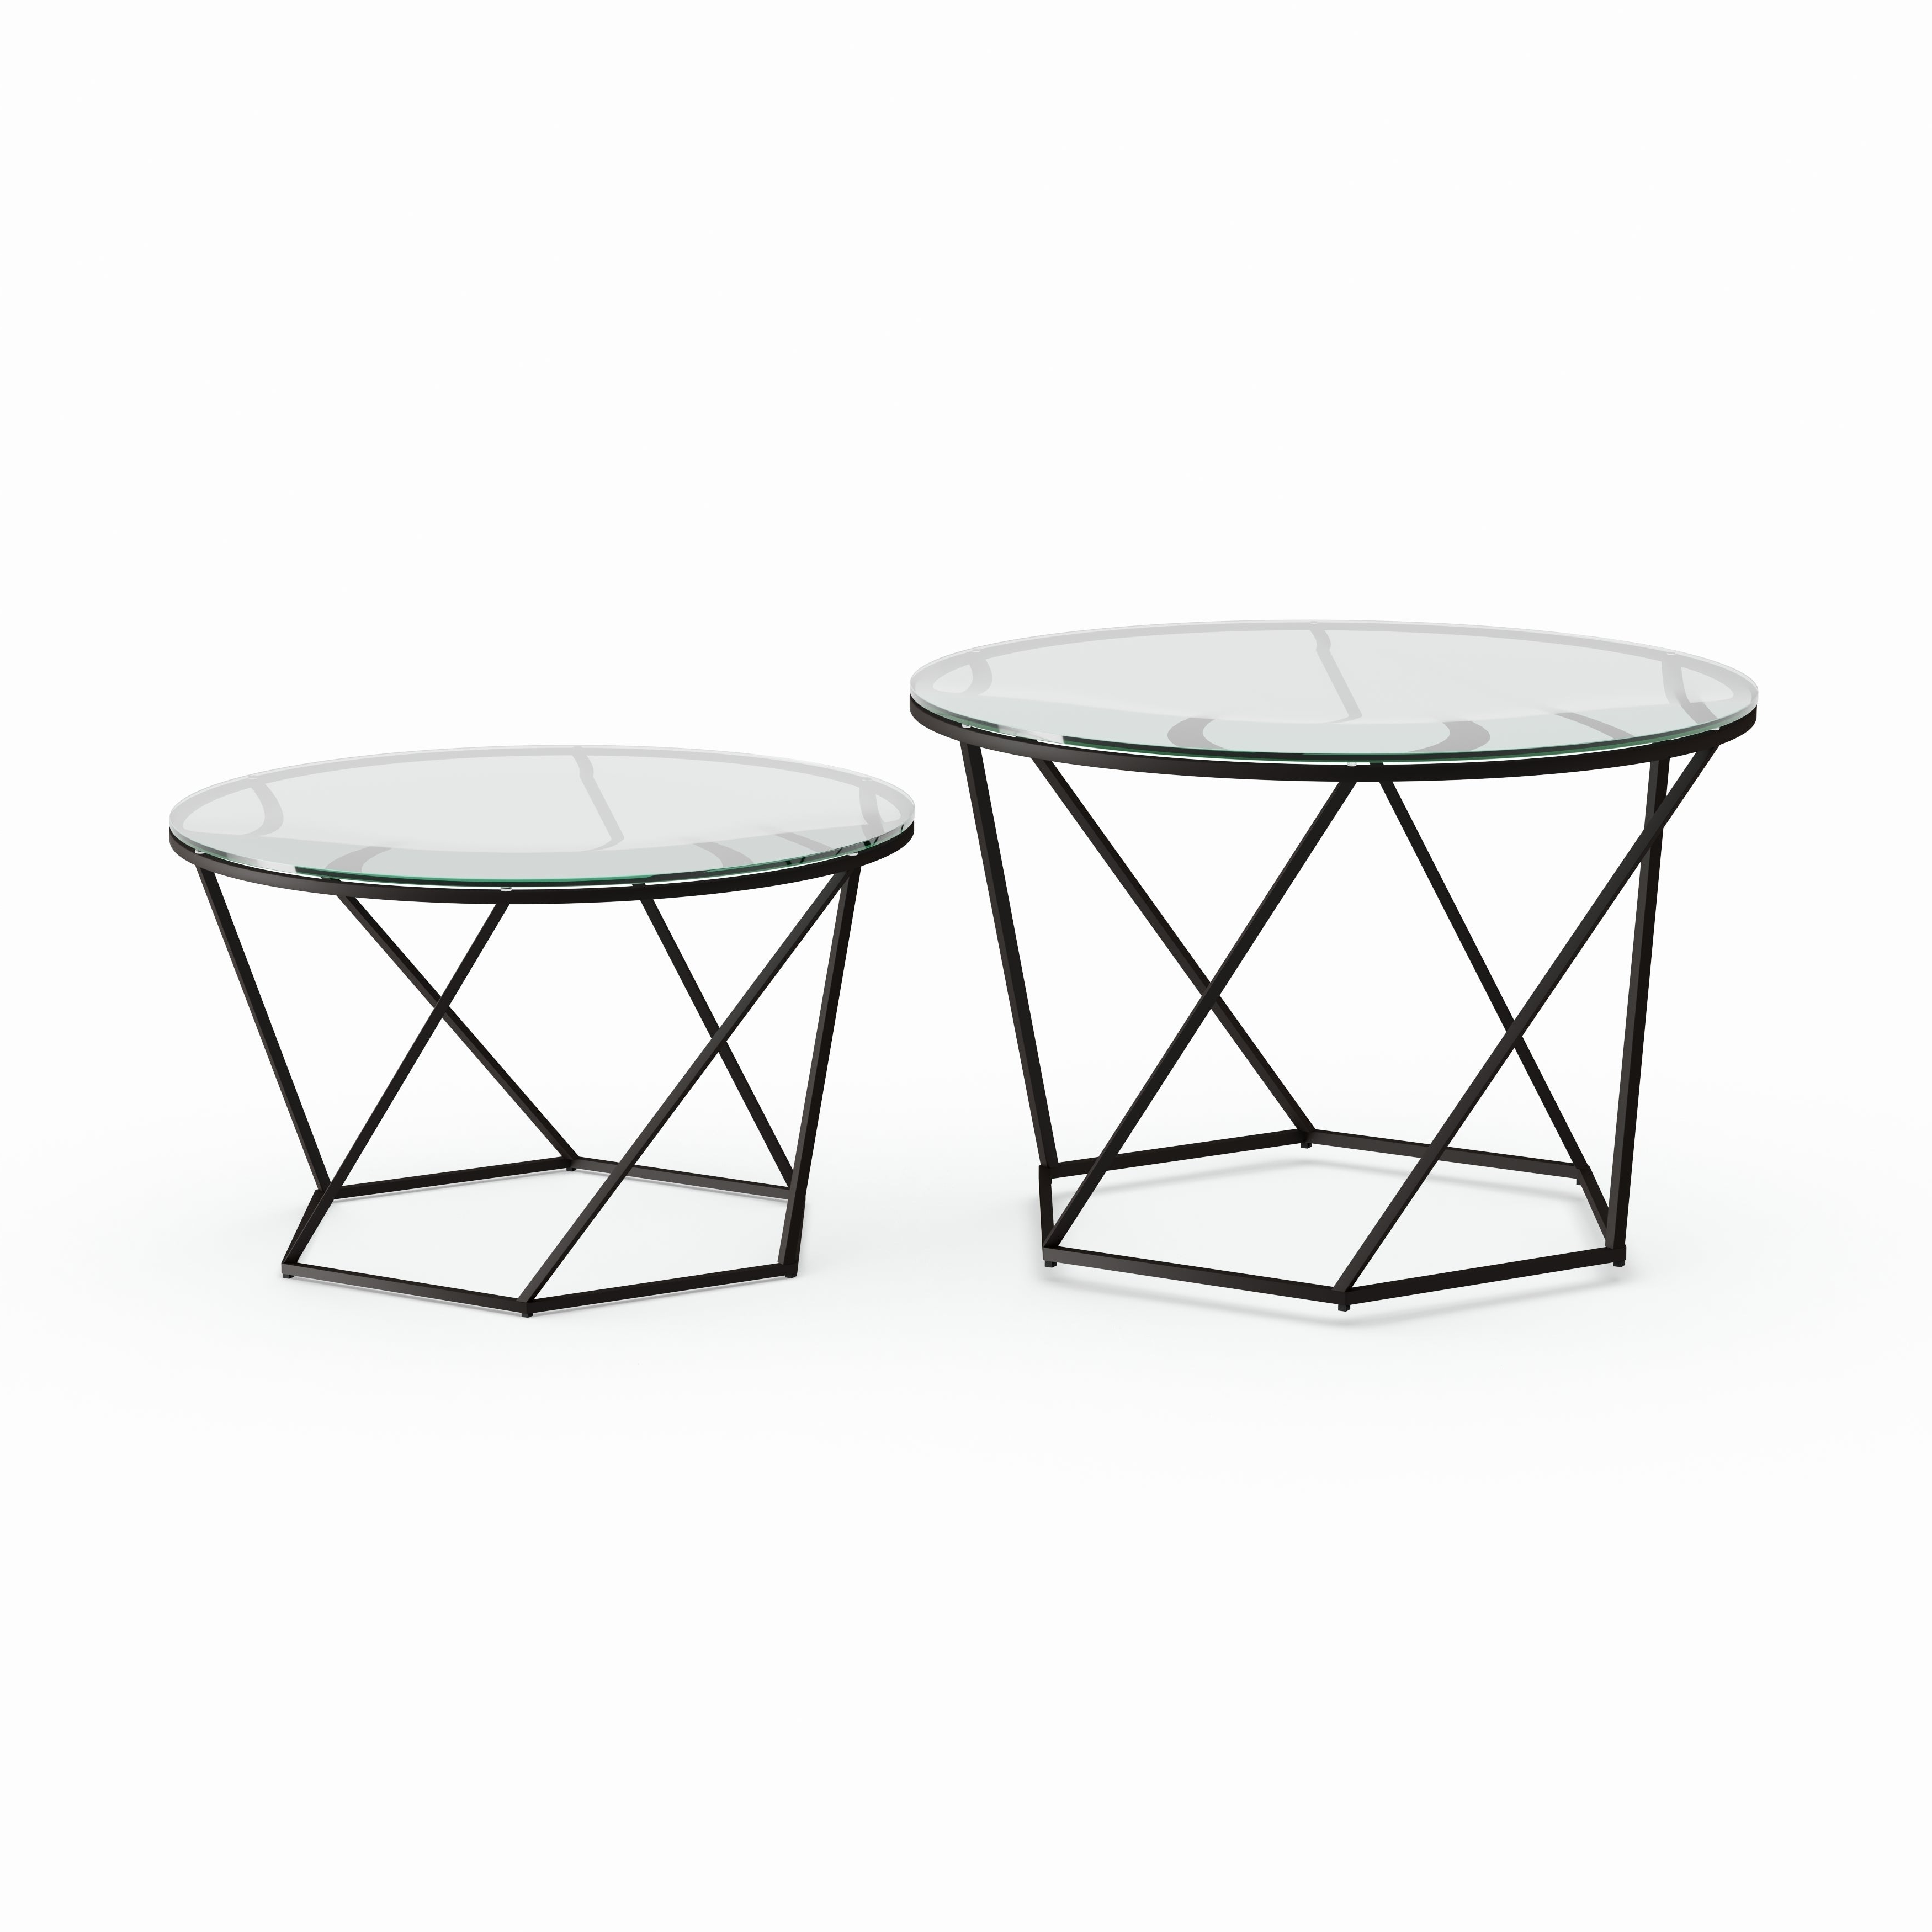 Latest Silver Orchid Grant Glam Nesting Cocktail Tables Intended For Silver Orchid Grant Round Glass Nesting Coffee Table Set – (View 9 of 20)